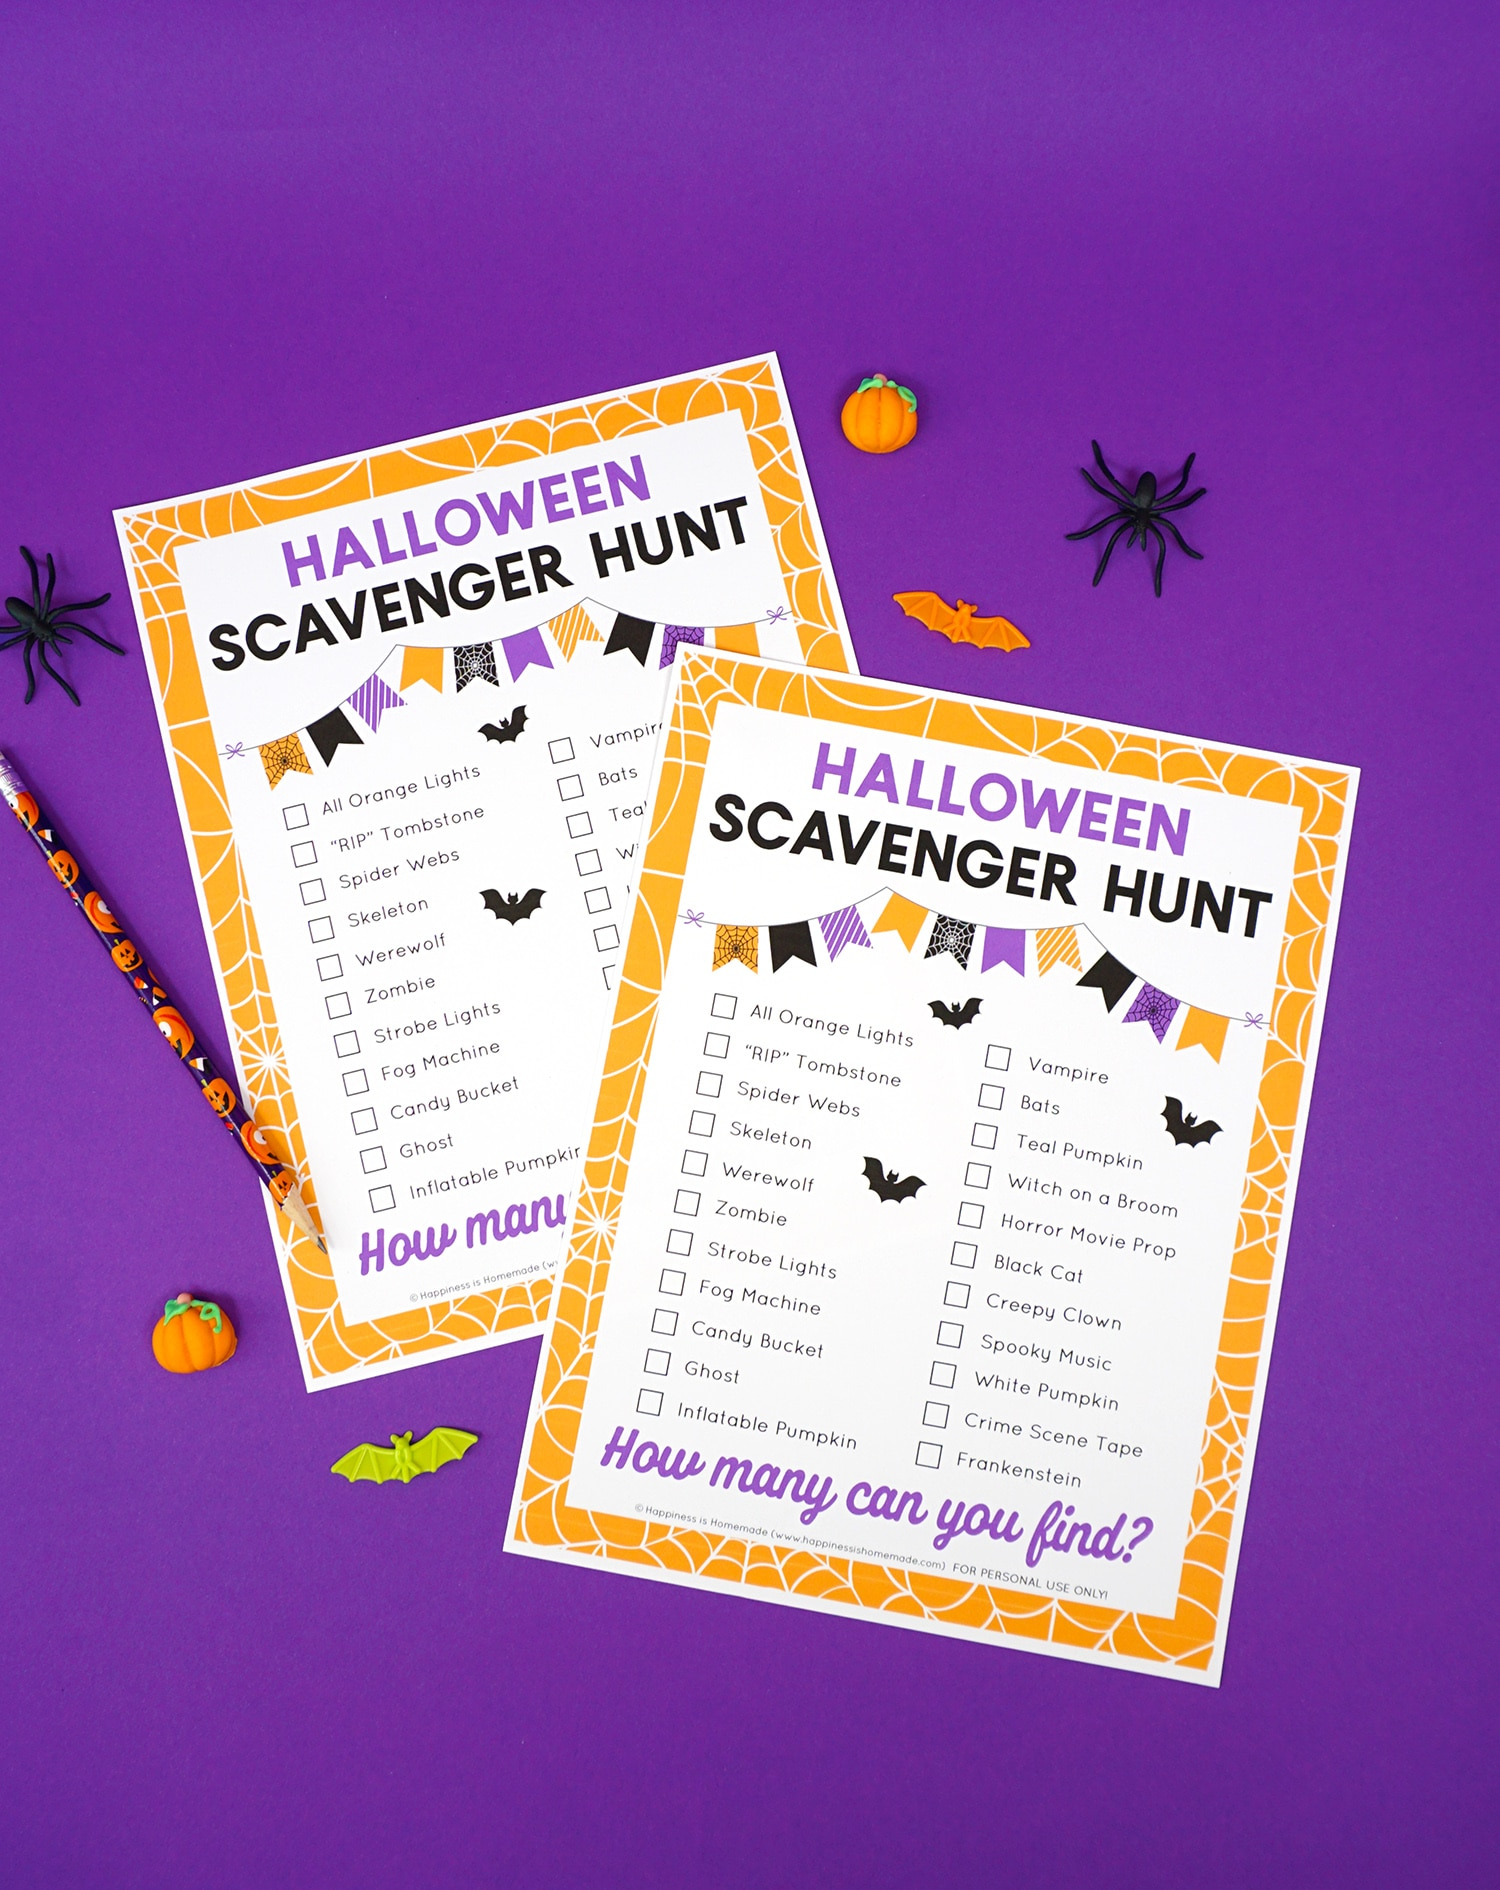 Two Halloween scavenger hunt printable games on a purple background surrounded by Halloween novelty toys